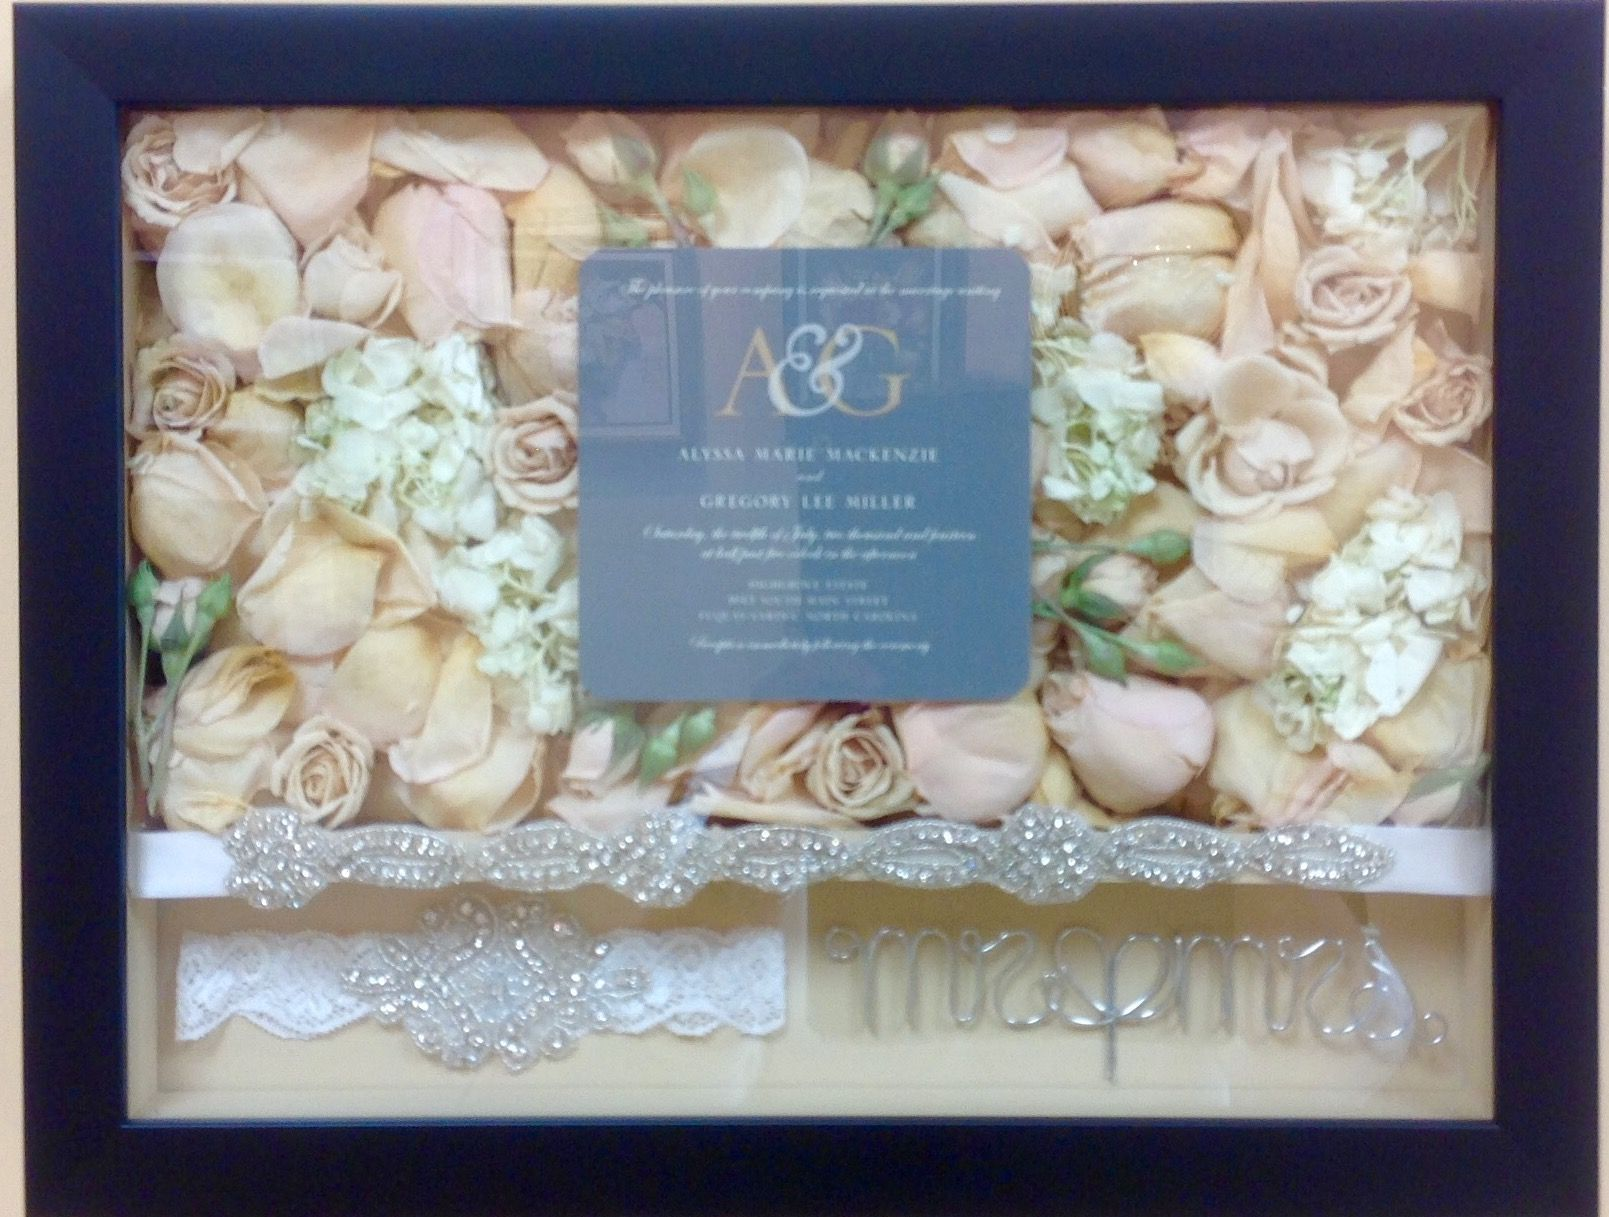 Simple black shadow box with a deconstructed bouquet, invitation ...